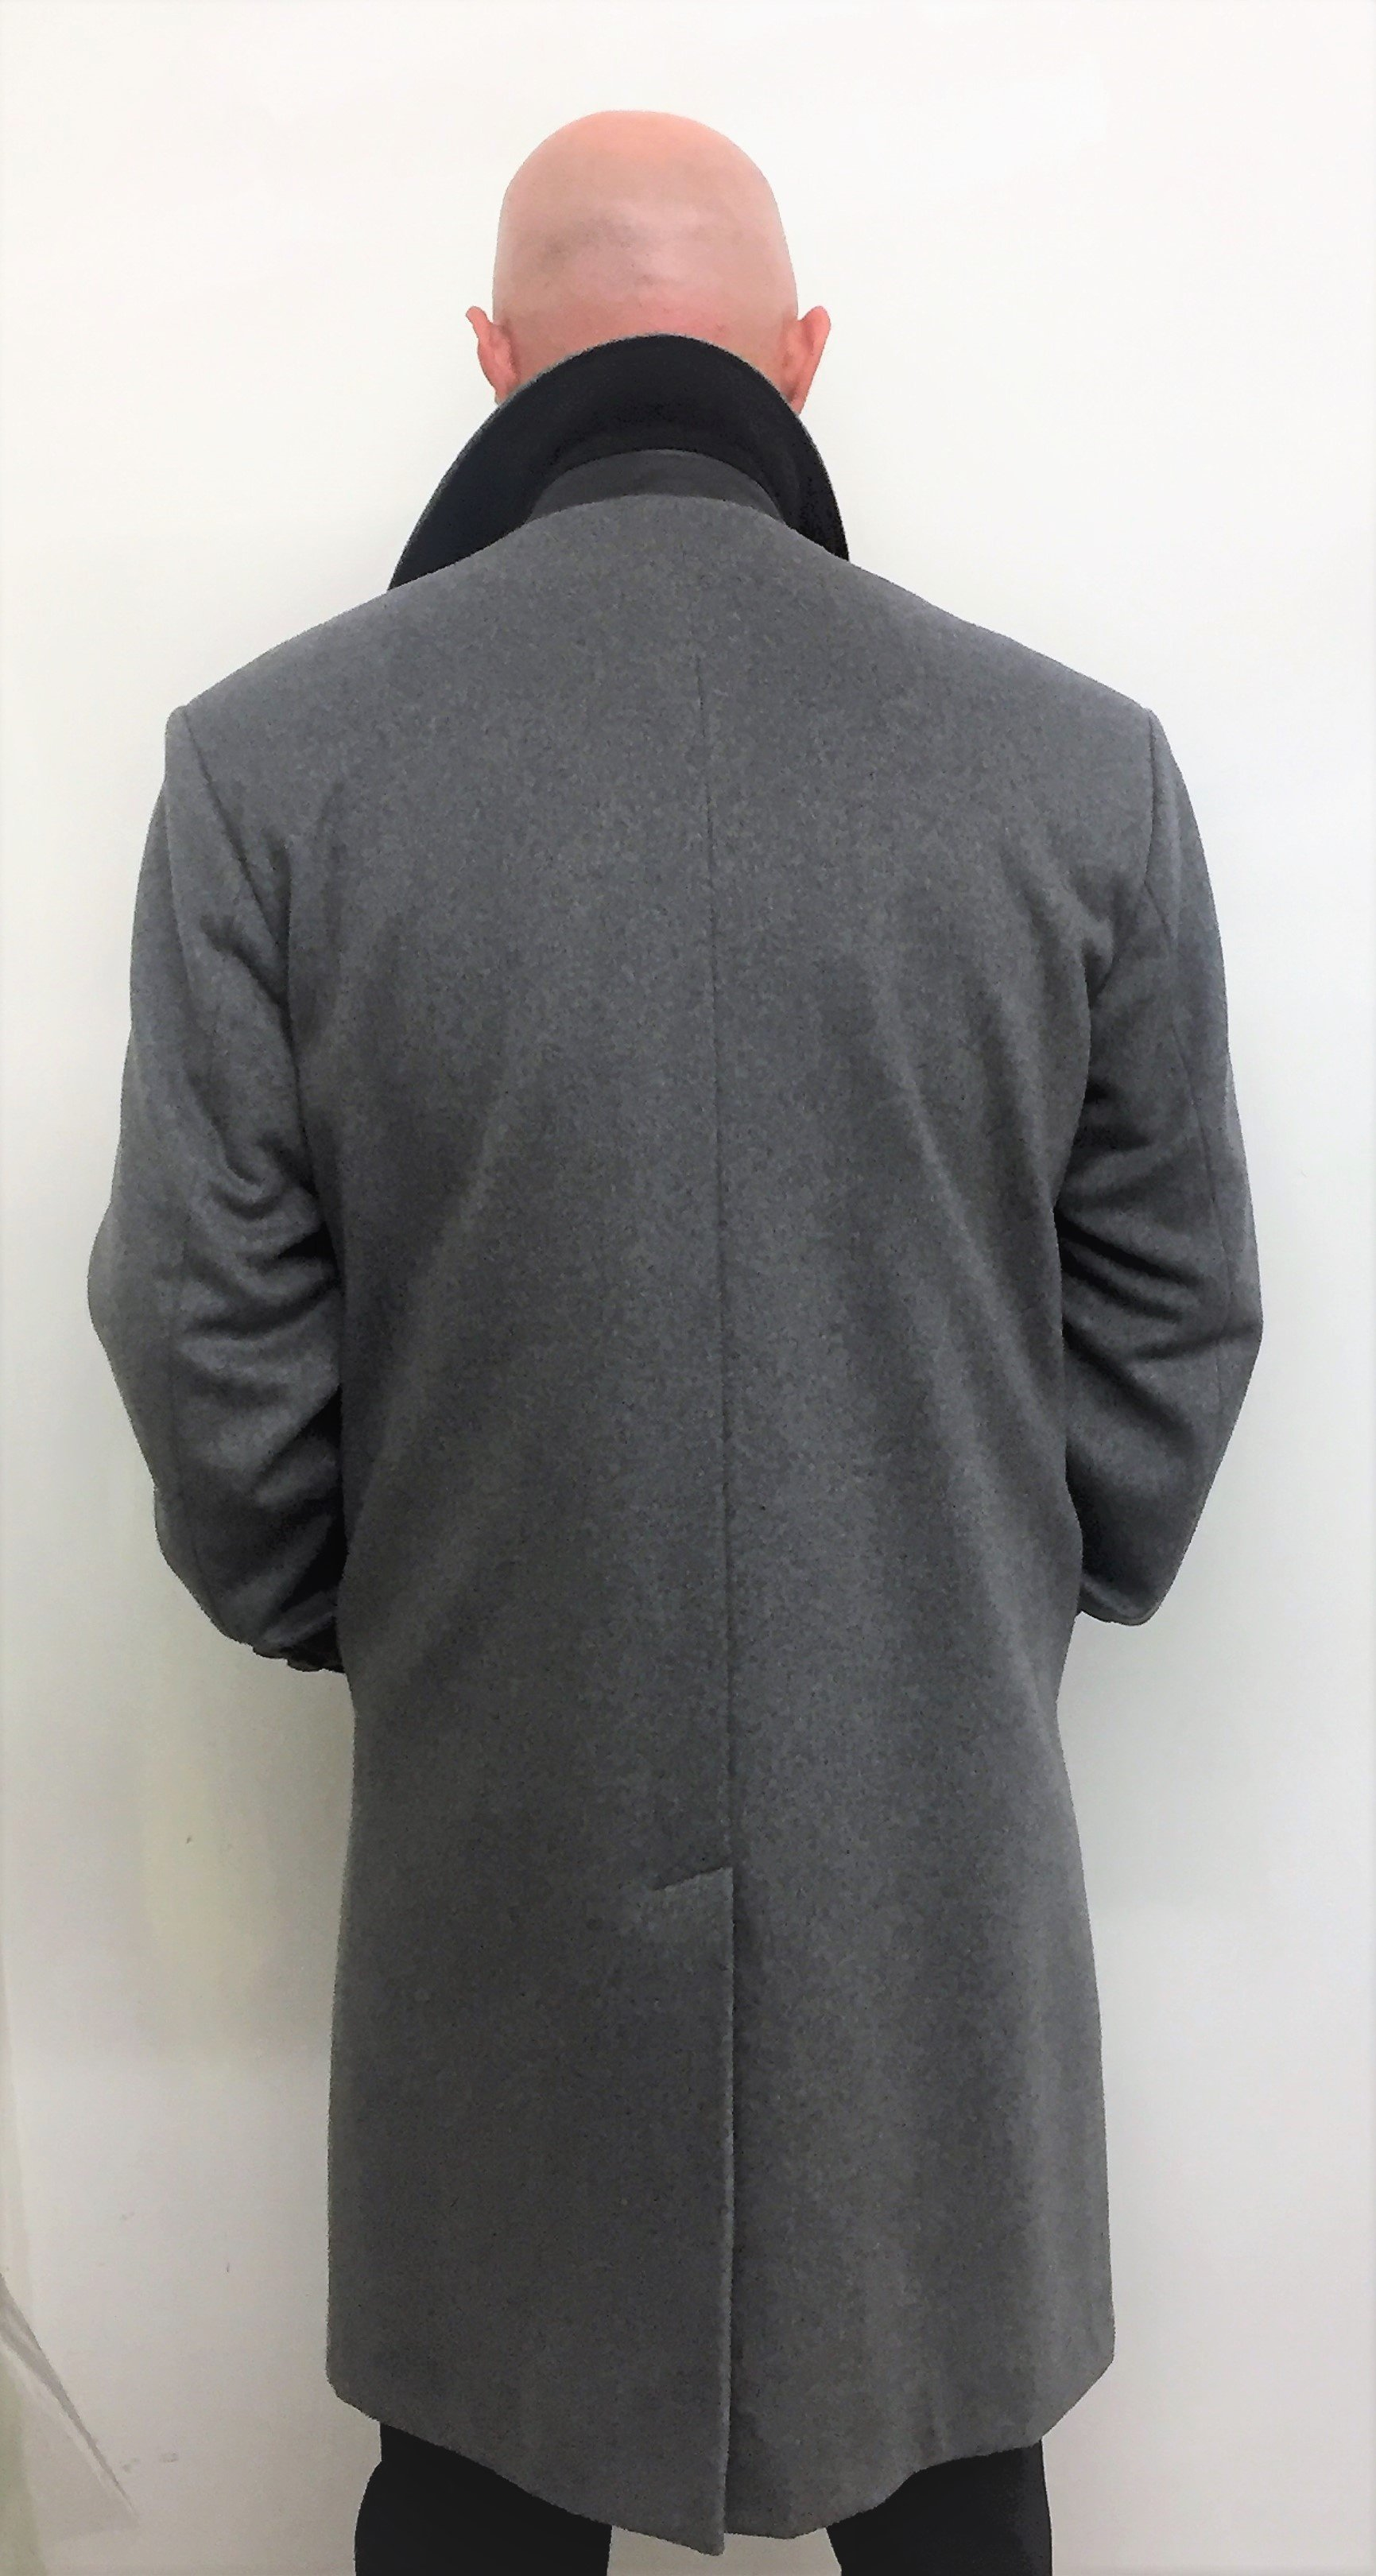 Style #M20189 Heather Grey 50% Cashmere & Wool (Back)